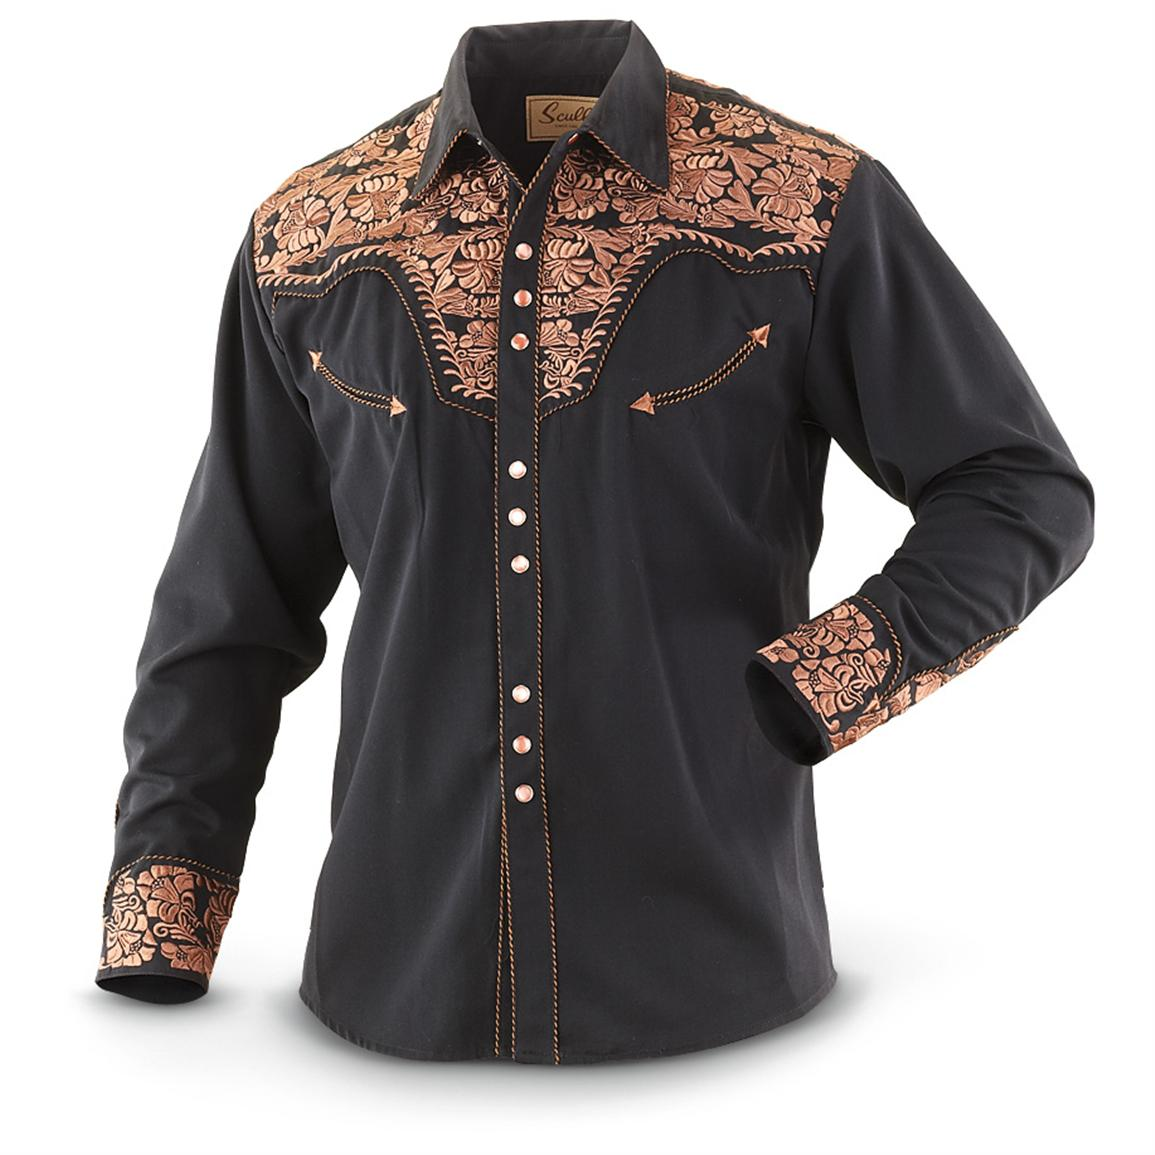 Scully embroidered shirt black  shirts at